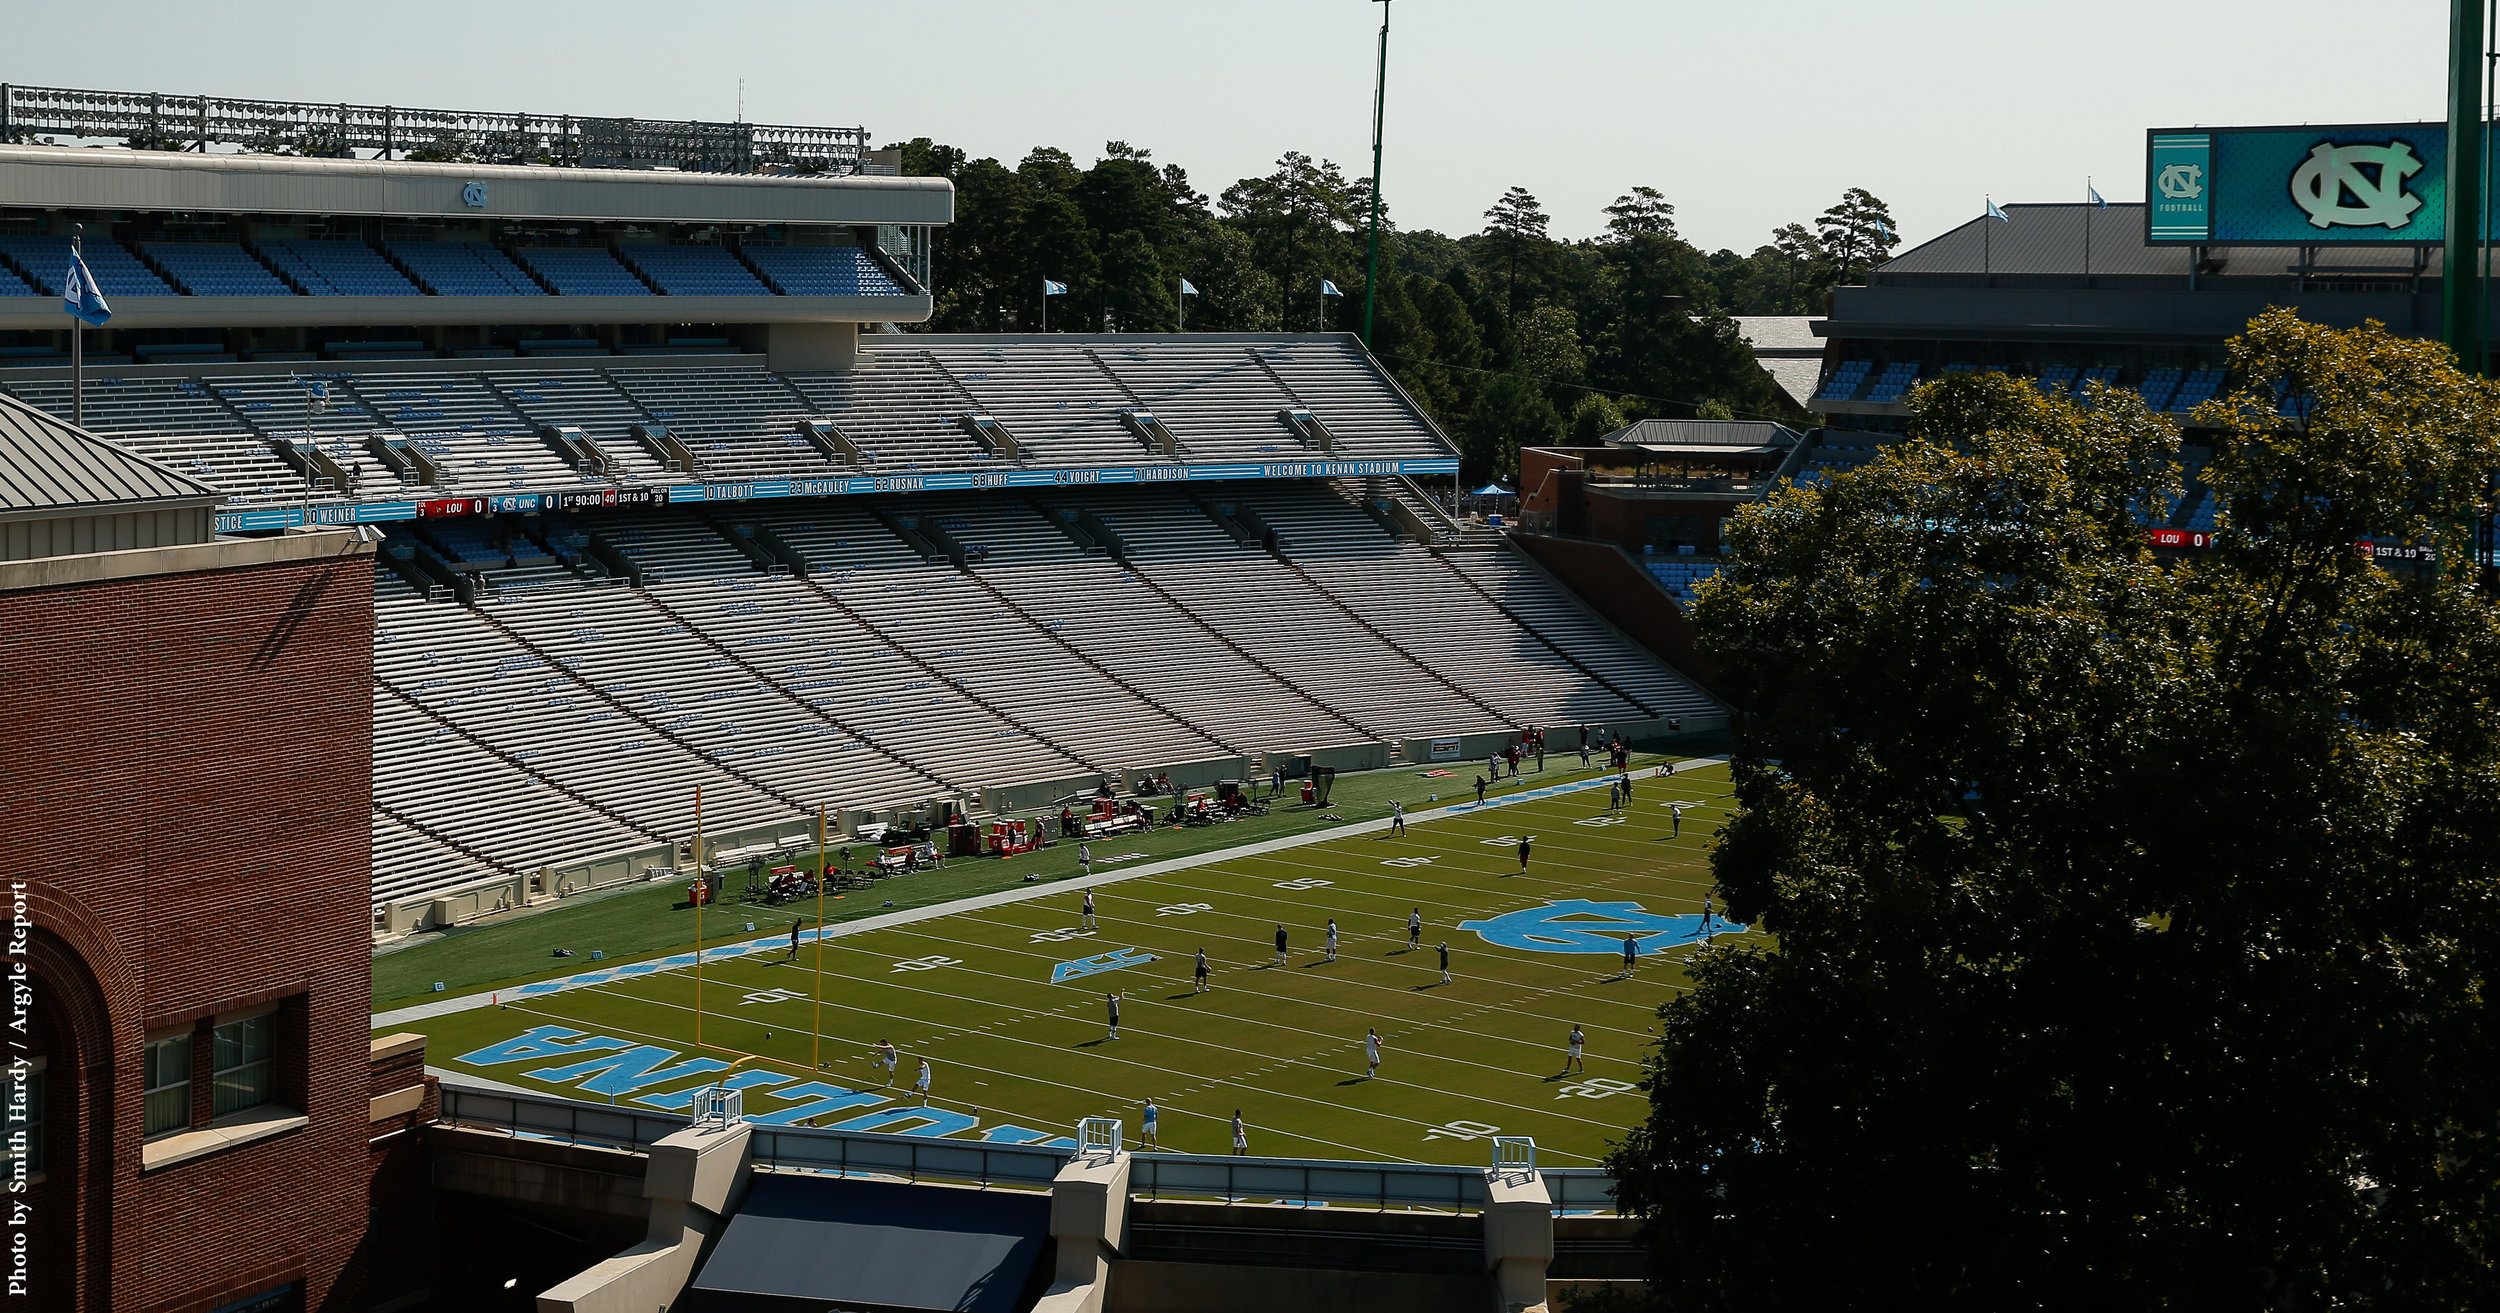 Tarheels vs Cards Football 2017 (11 of 11).jpg